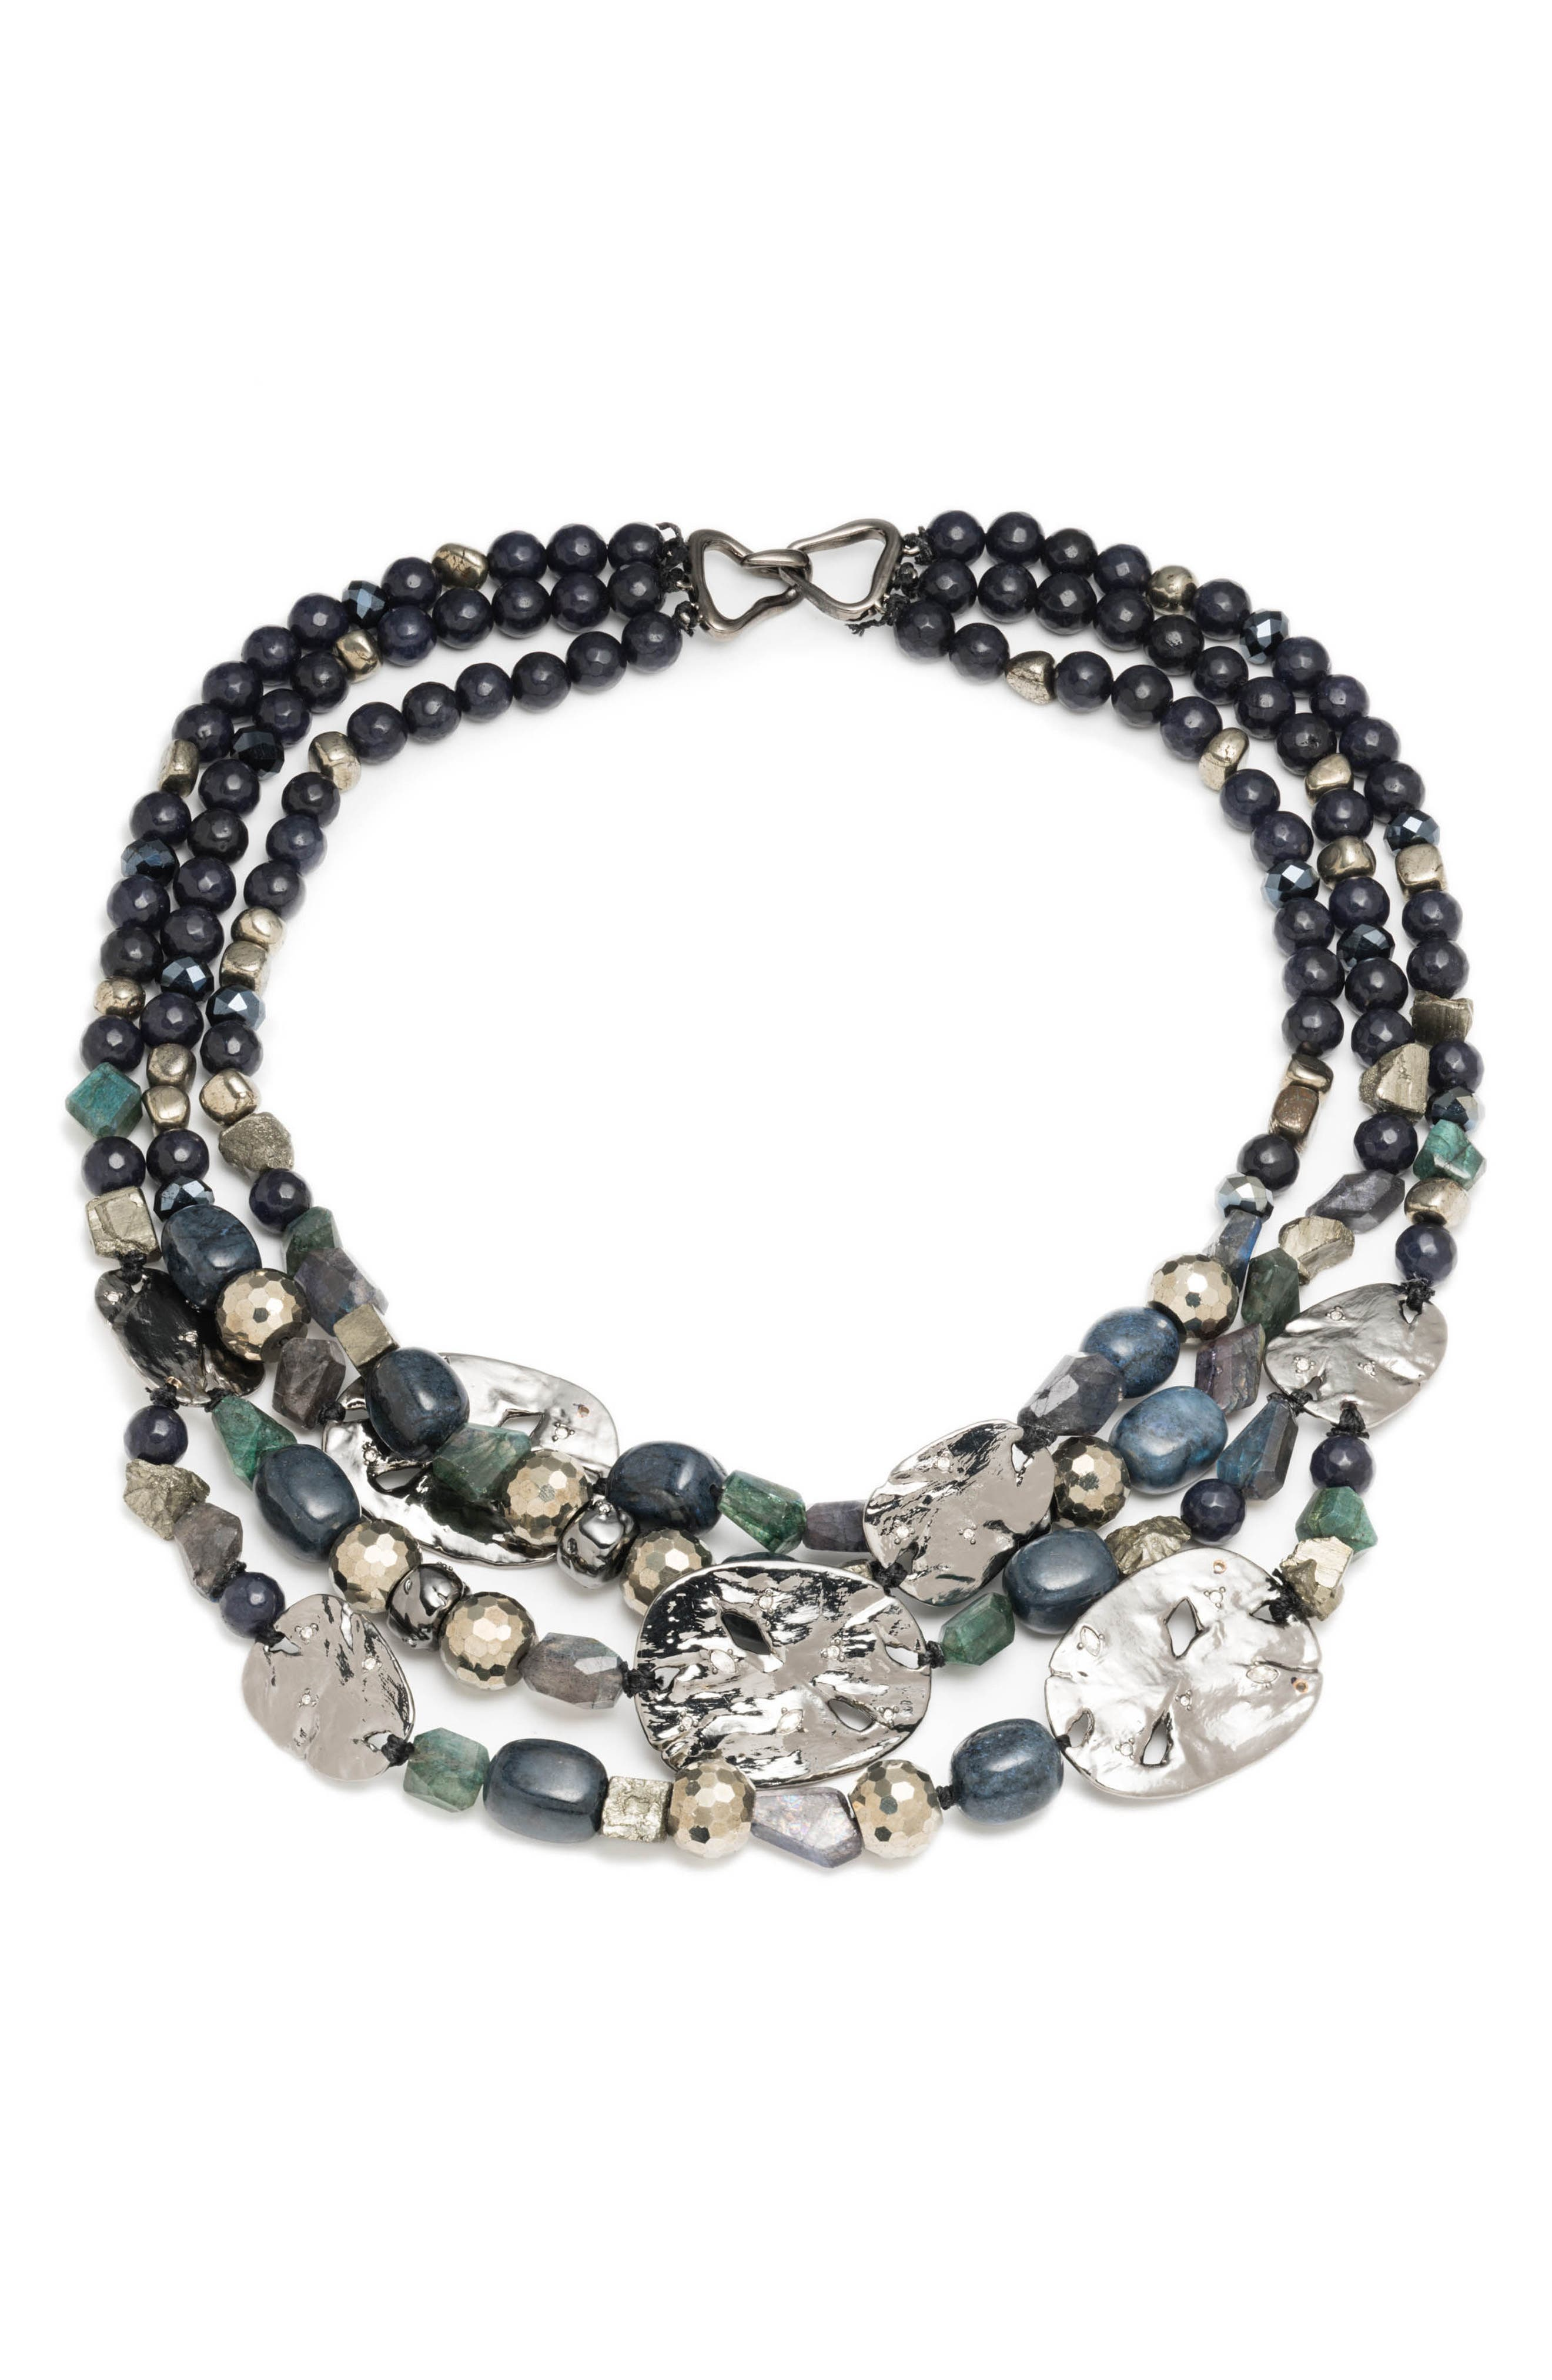 Elements Multistrand Beaded Necklace,                             Main thumbnail 1, color,                             400